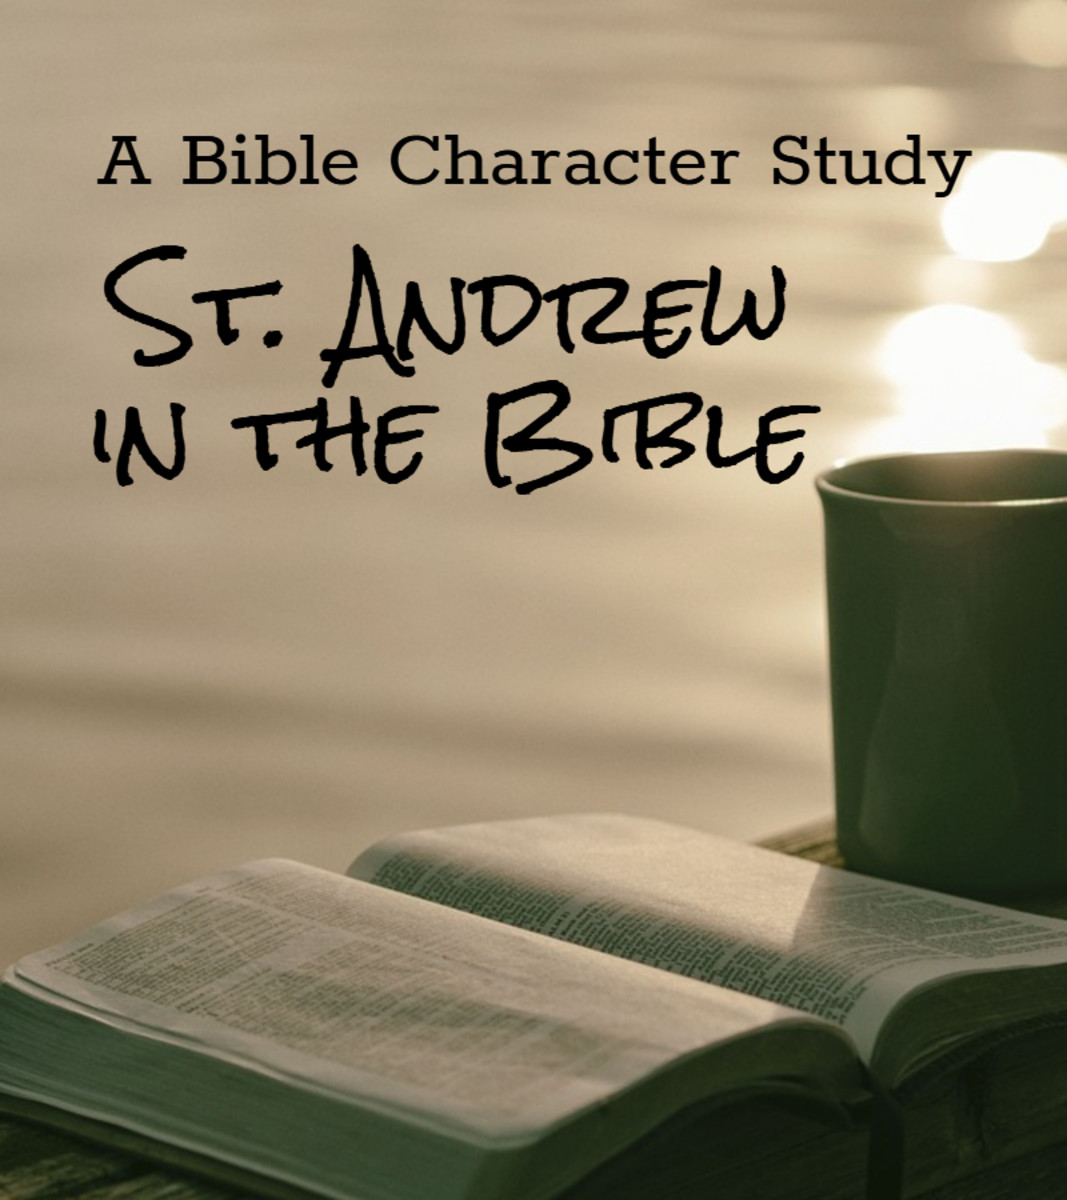 A Bible Character Study - St. Andrew in the Bible